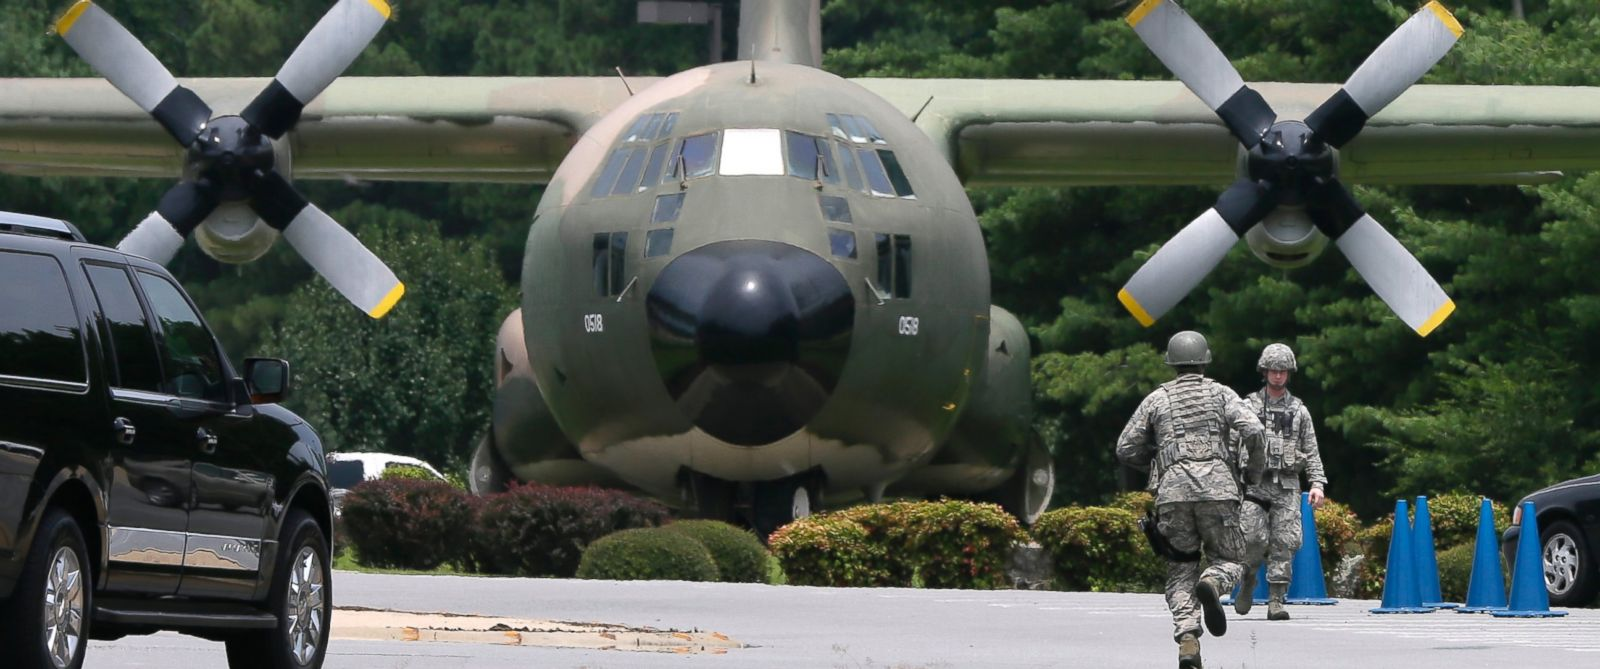 PHOTO: A C-130 aircraft is pictured at Little Rock Air Force Base in Jacksonville, Ark. on July 23, 2014 in this file photo.